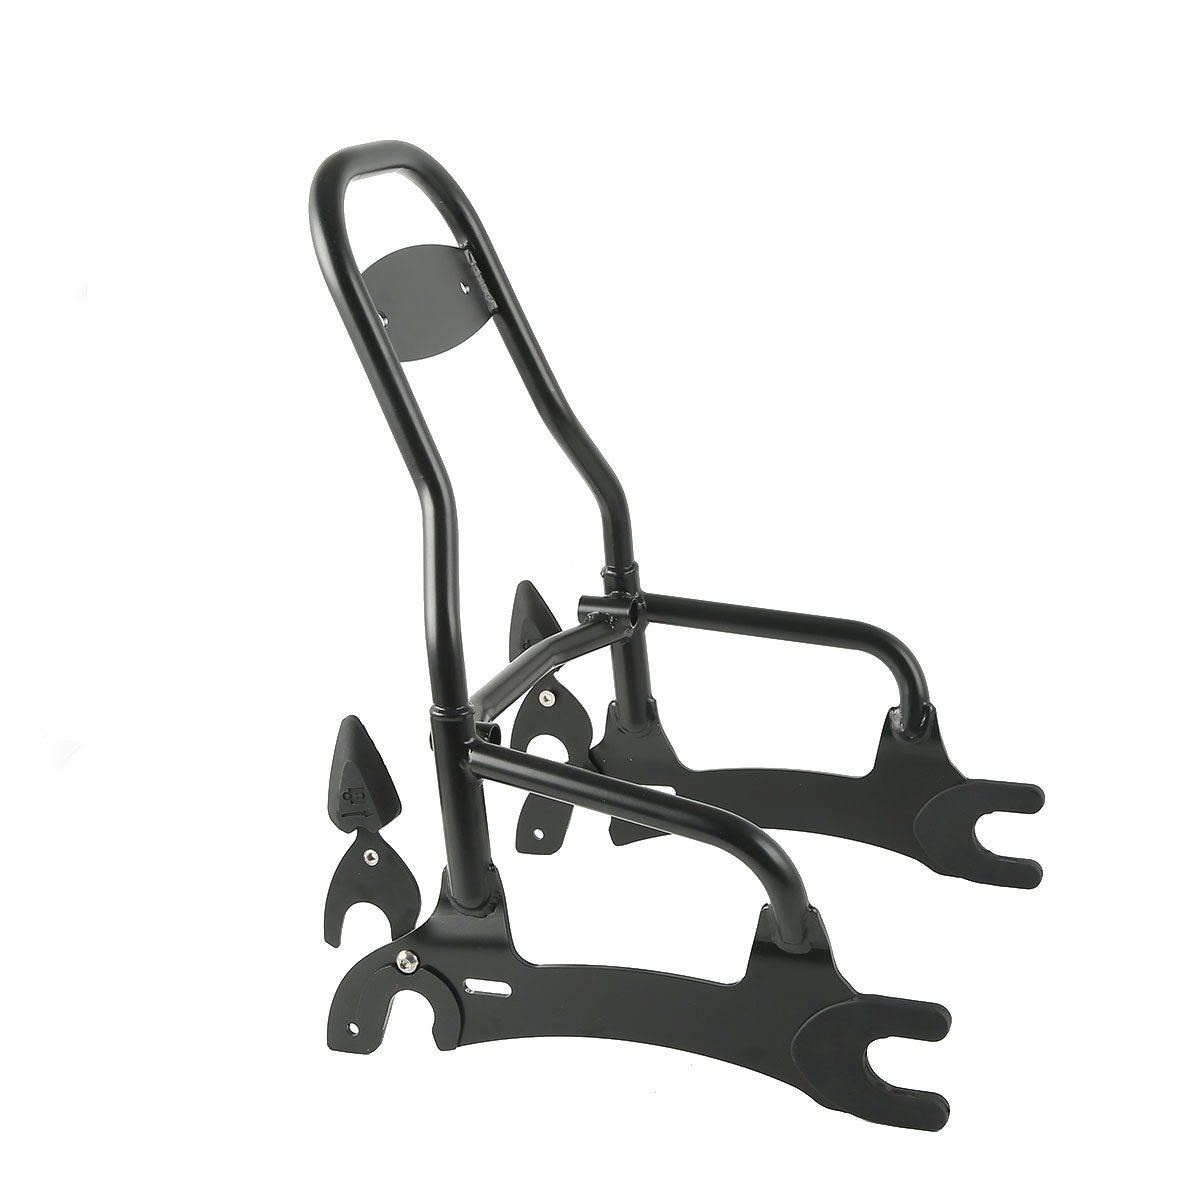 XFMT 12 Backrest Sissy Bar W//Pad Compatible with Indian Chief Classic Vintage 2014-2018 15 16